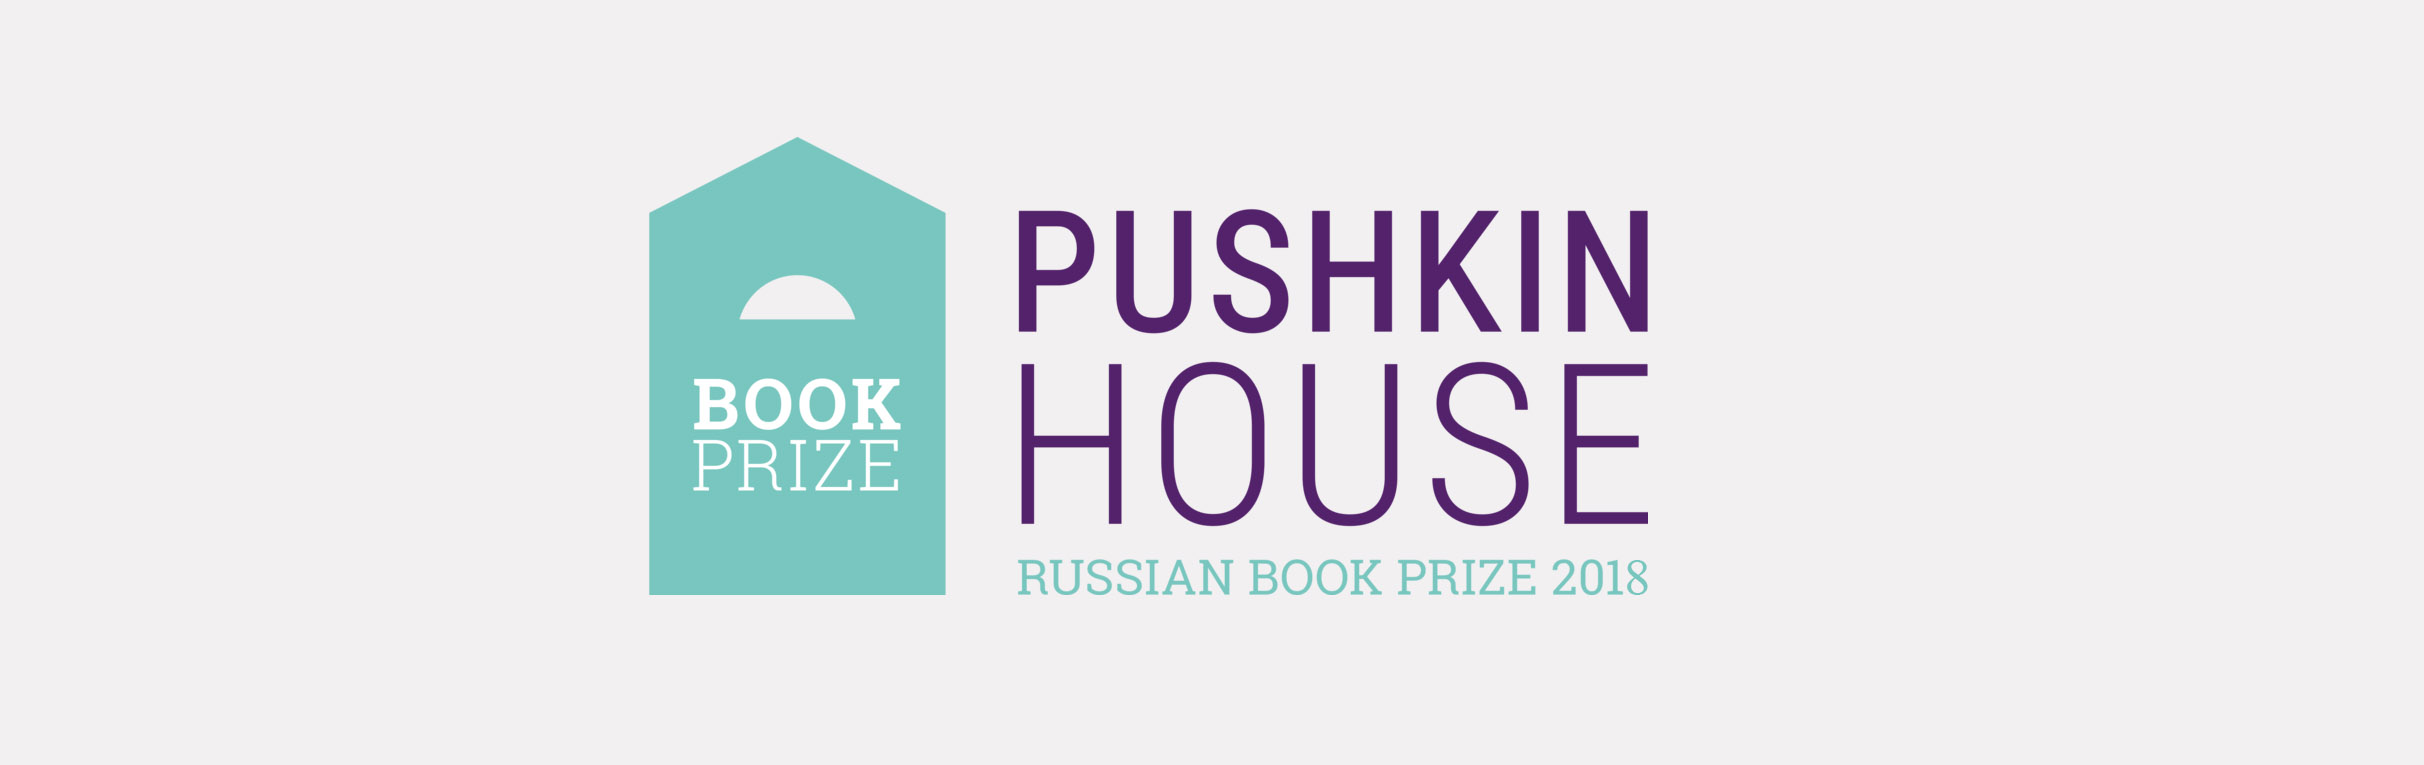 The Pushkin House Book Prize 2018